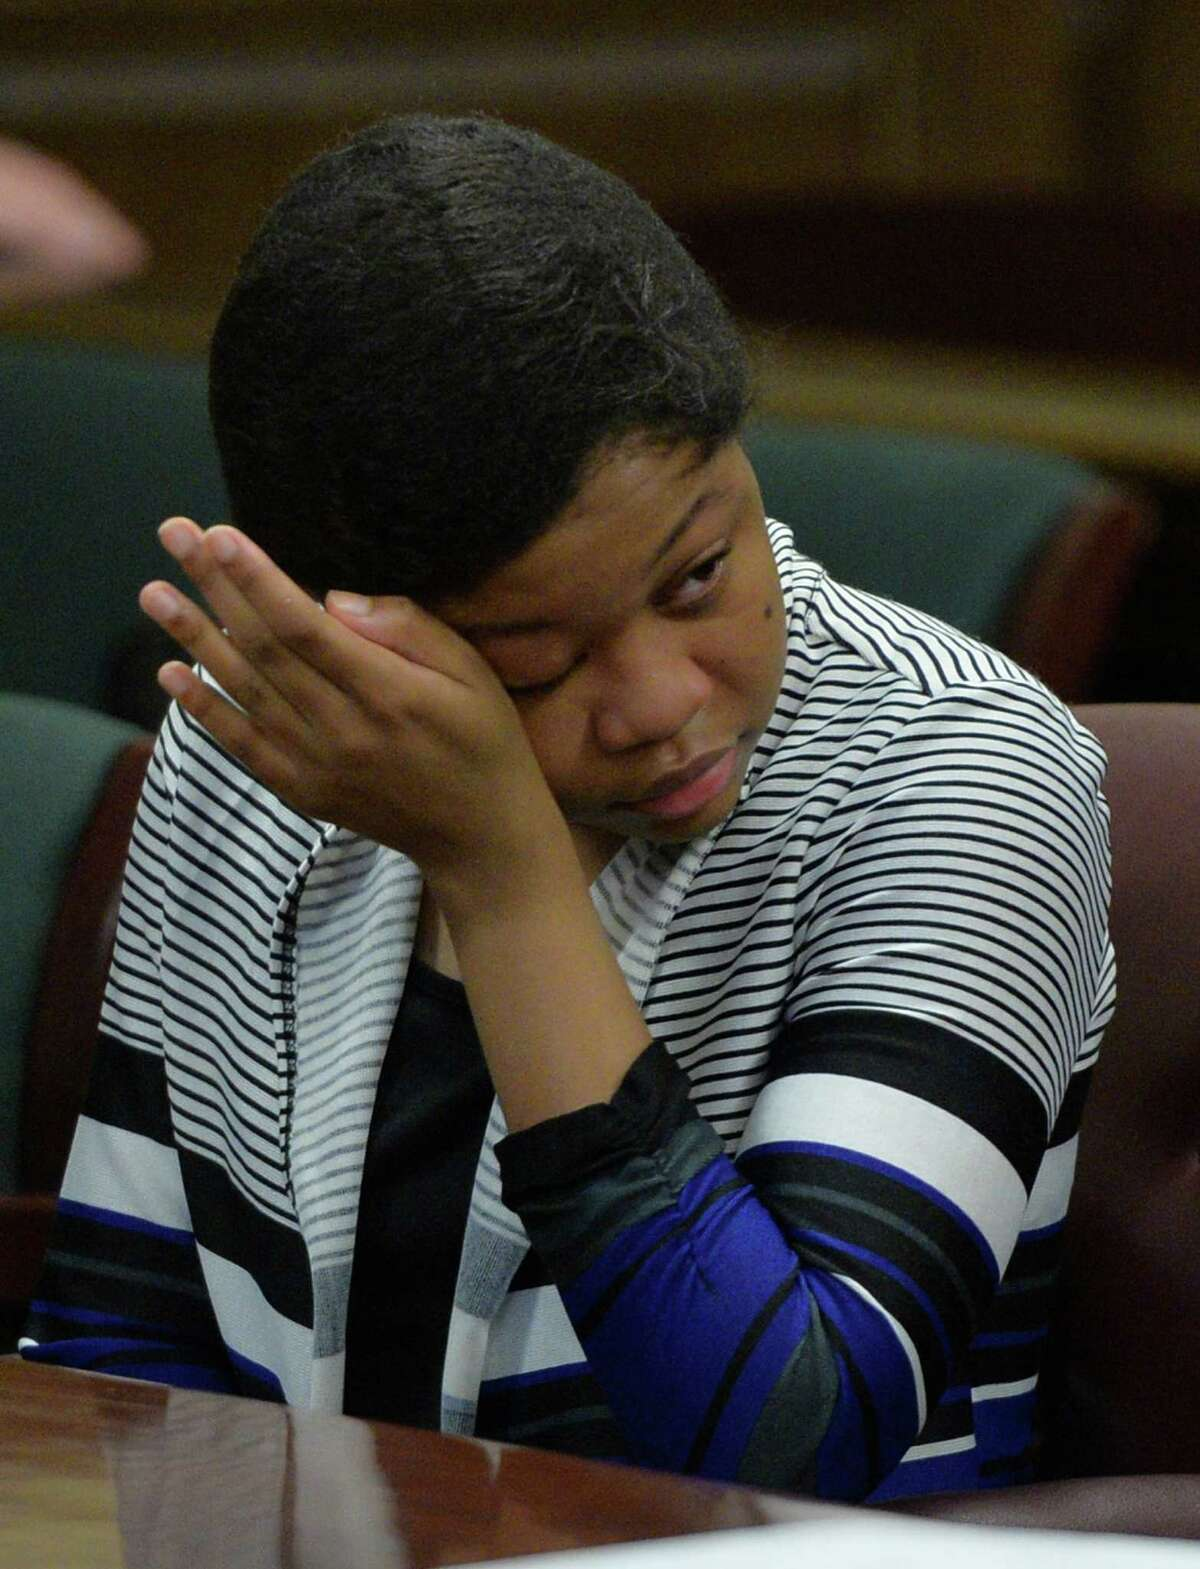 Trinity Copeland wipes tears from her eyes Wednesday morning, April 16, 2014, during opening statements in Trinity Copeland murder case at Rensselaer County Court in Troy, N.Y. (Skip Dickstein / Times Union)